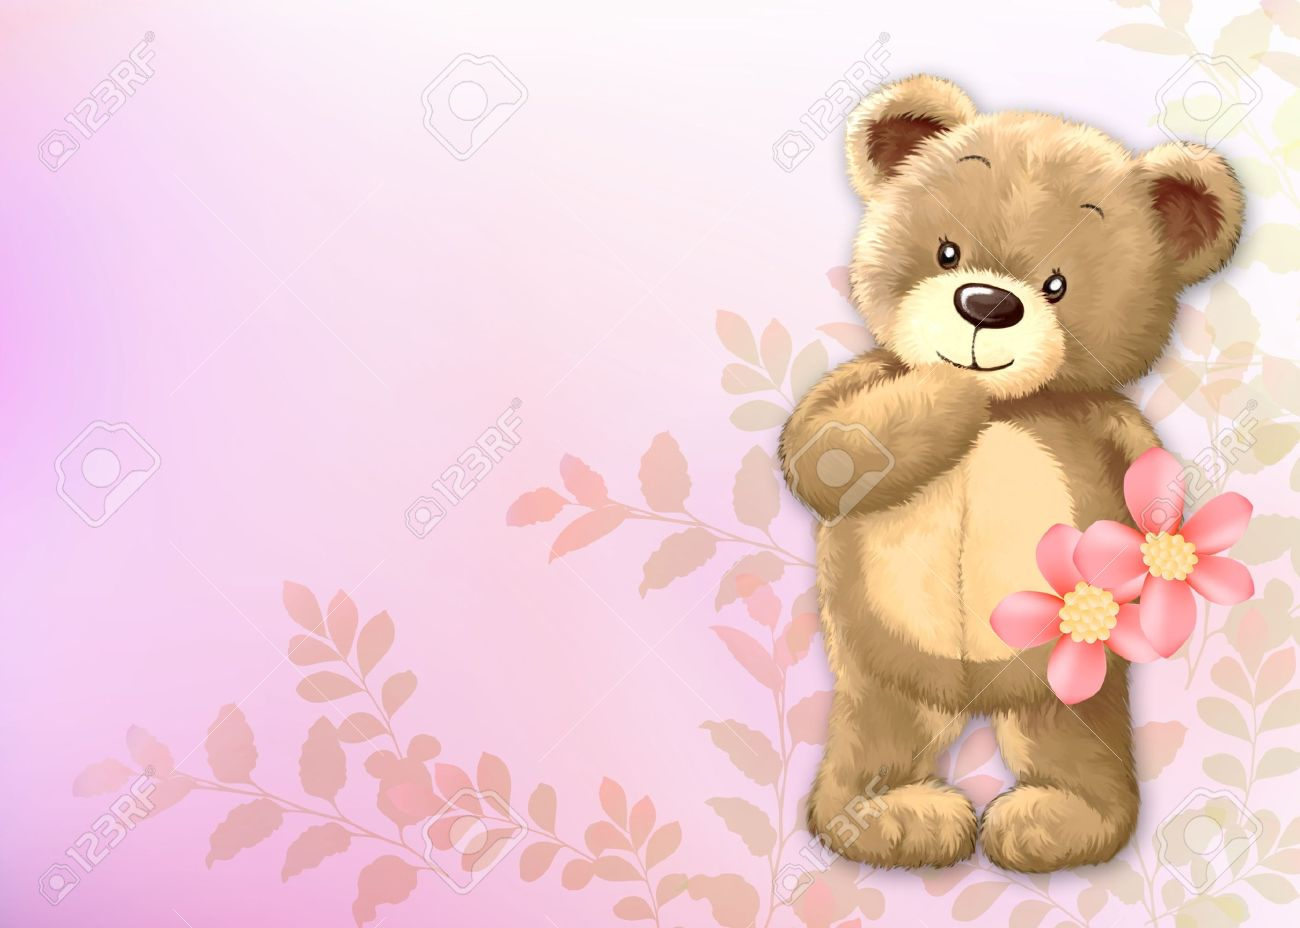 cute teddy bear by freehand drawing 01 stock photo picture and